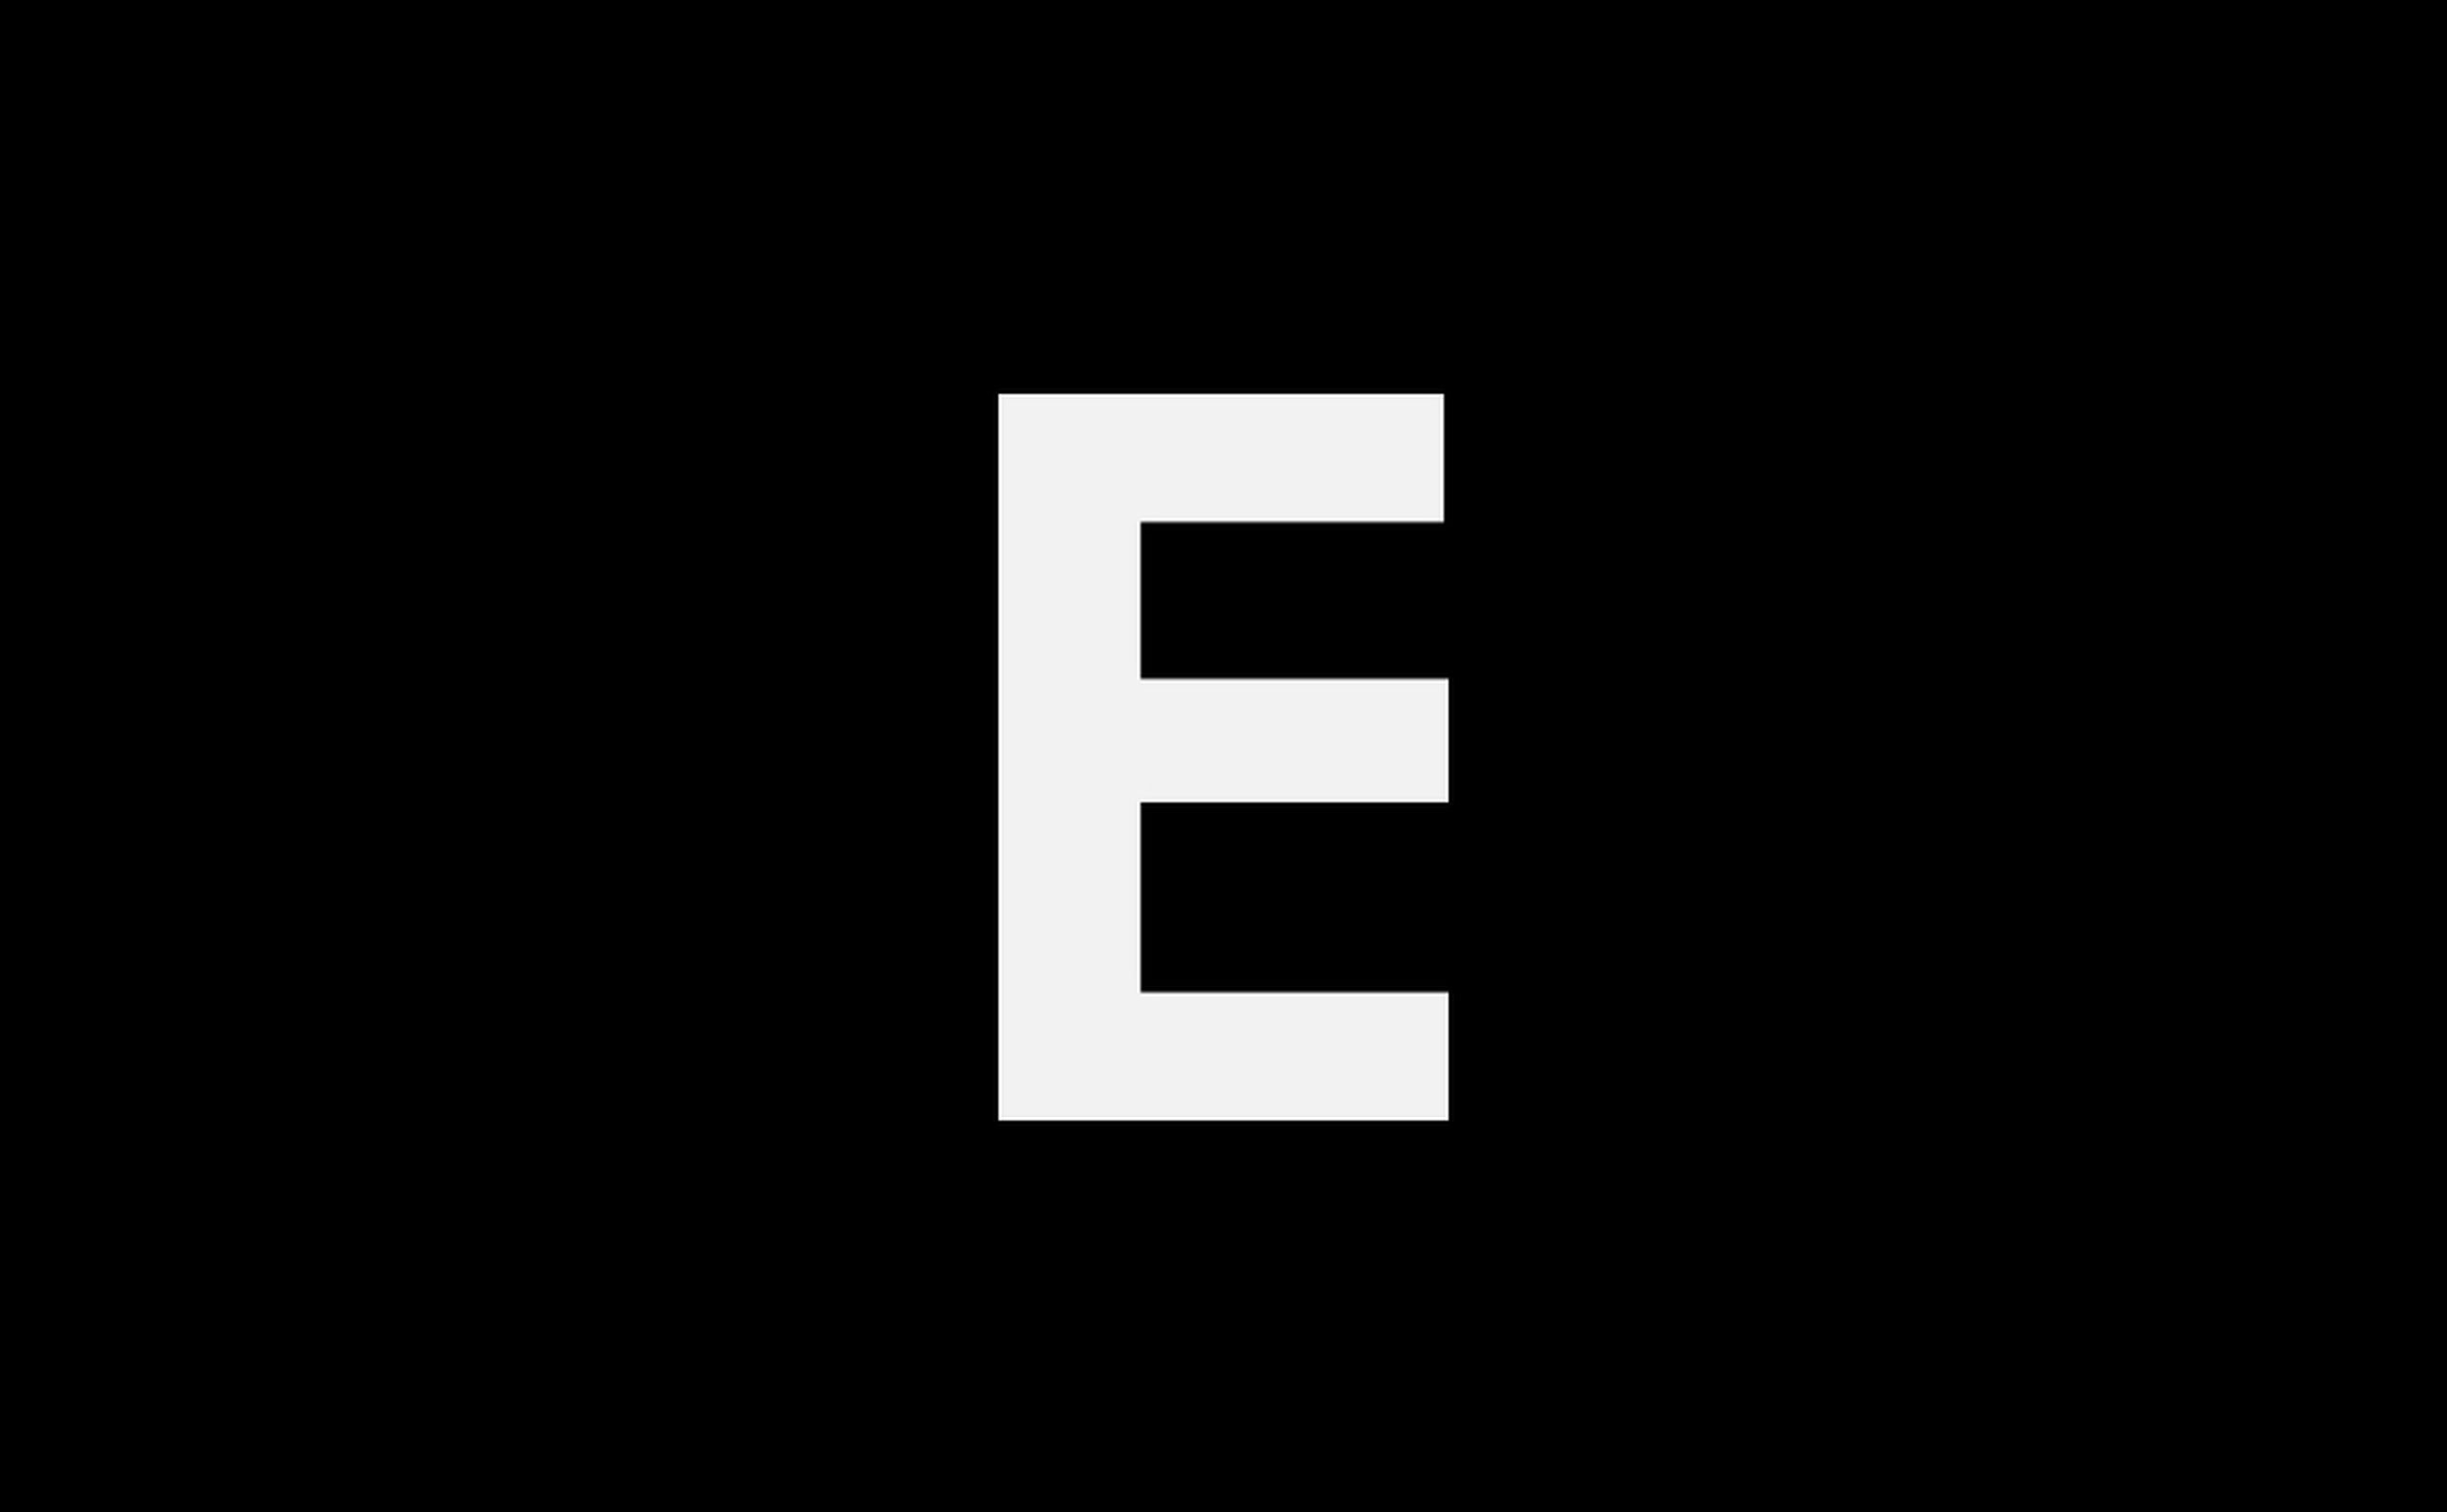 GROUP OF PEOPLE DANCING IN ILLUMINATED STAGE